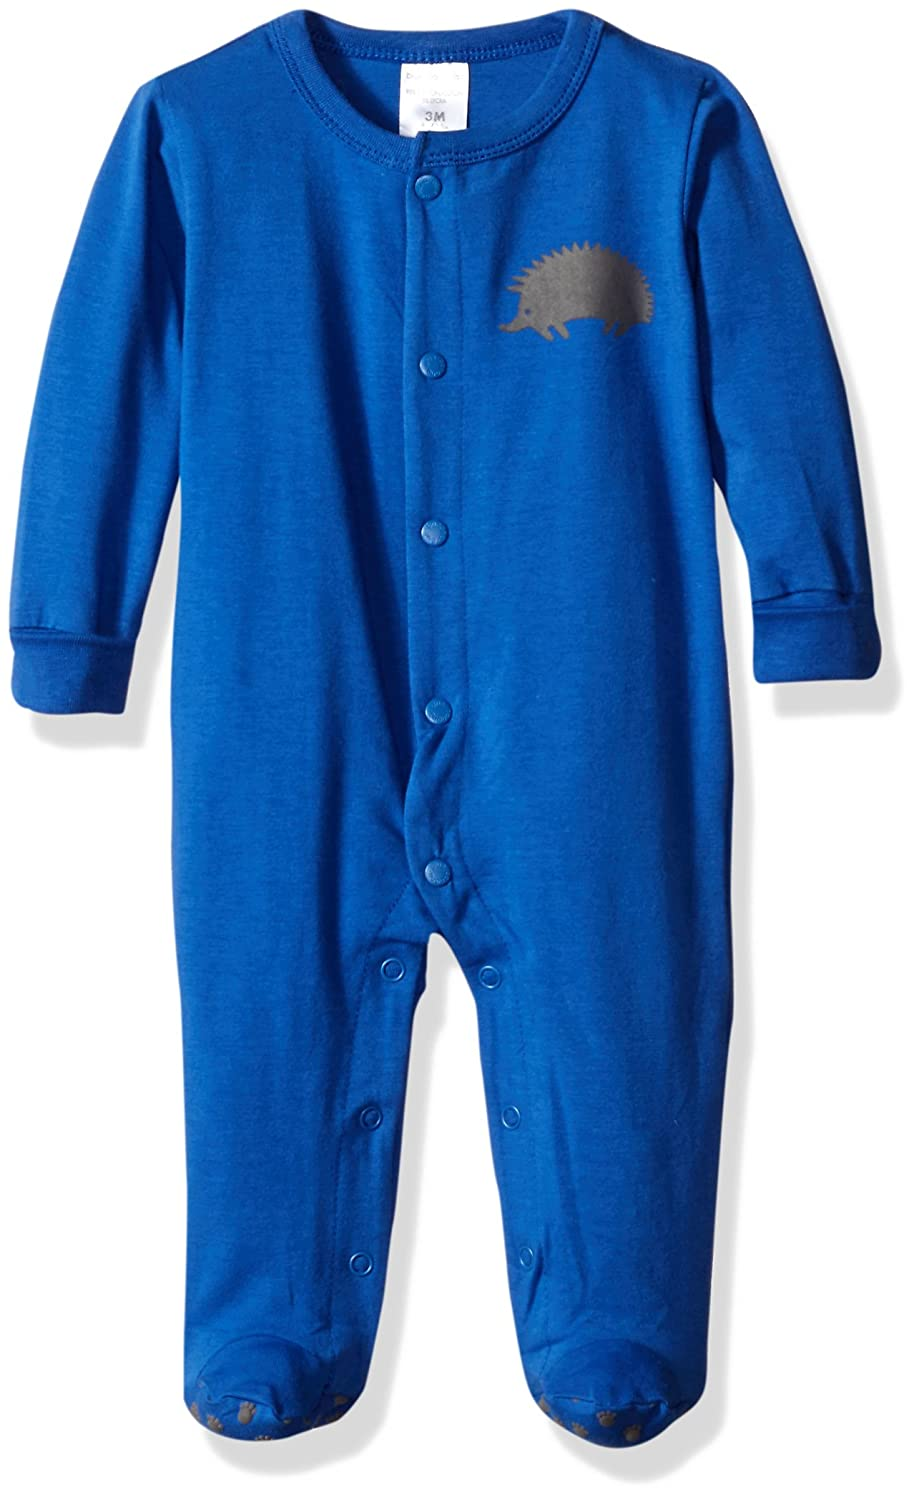 Blue Banana Baby Boys' Critters Front Snap Sleeper Kushies Children' s Apparel L1594